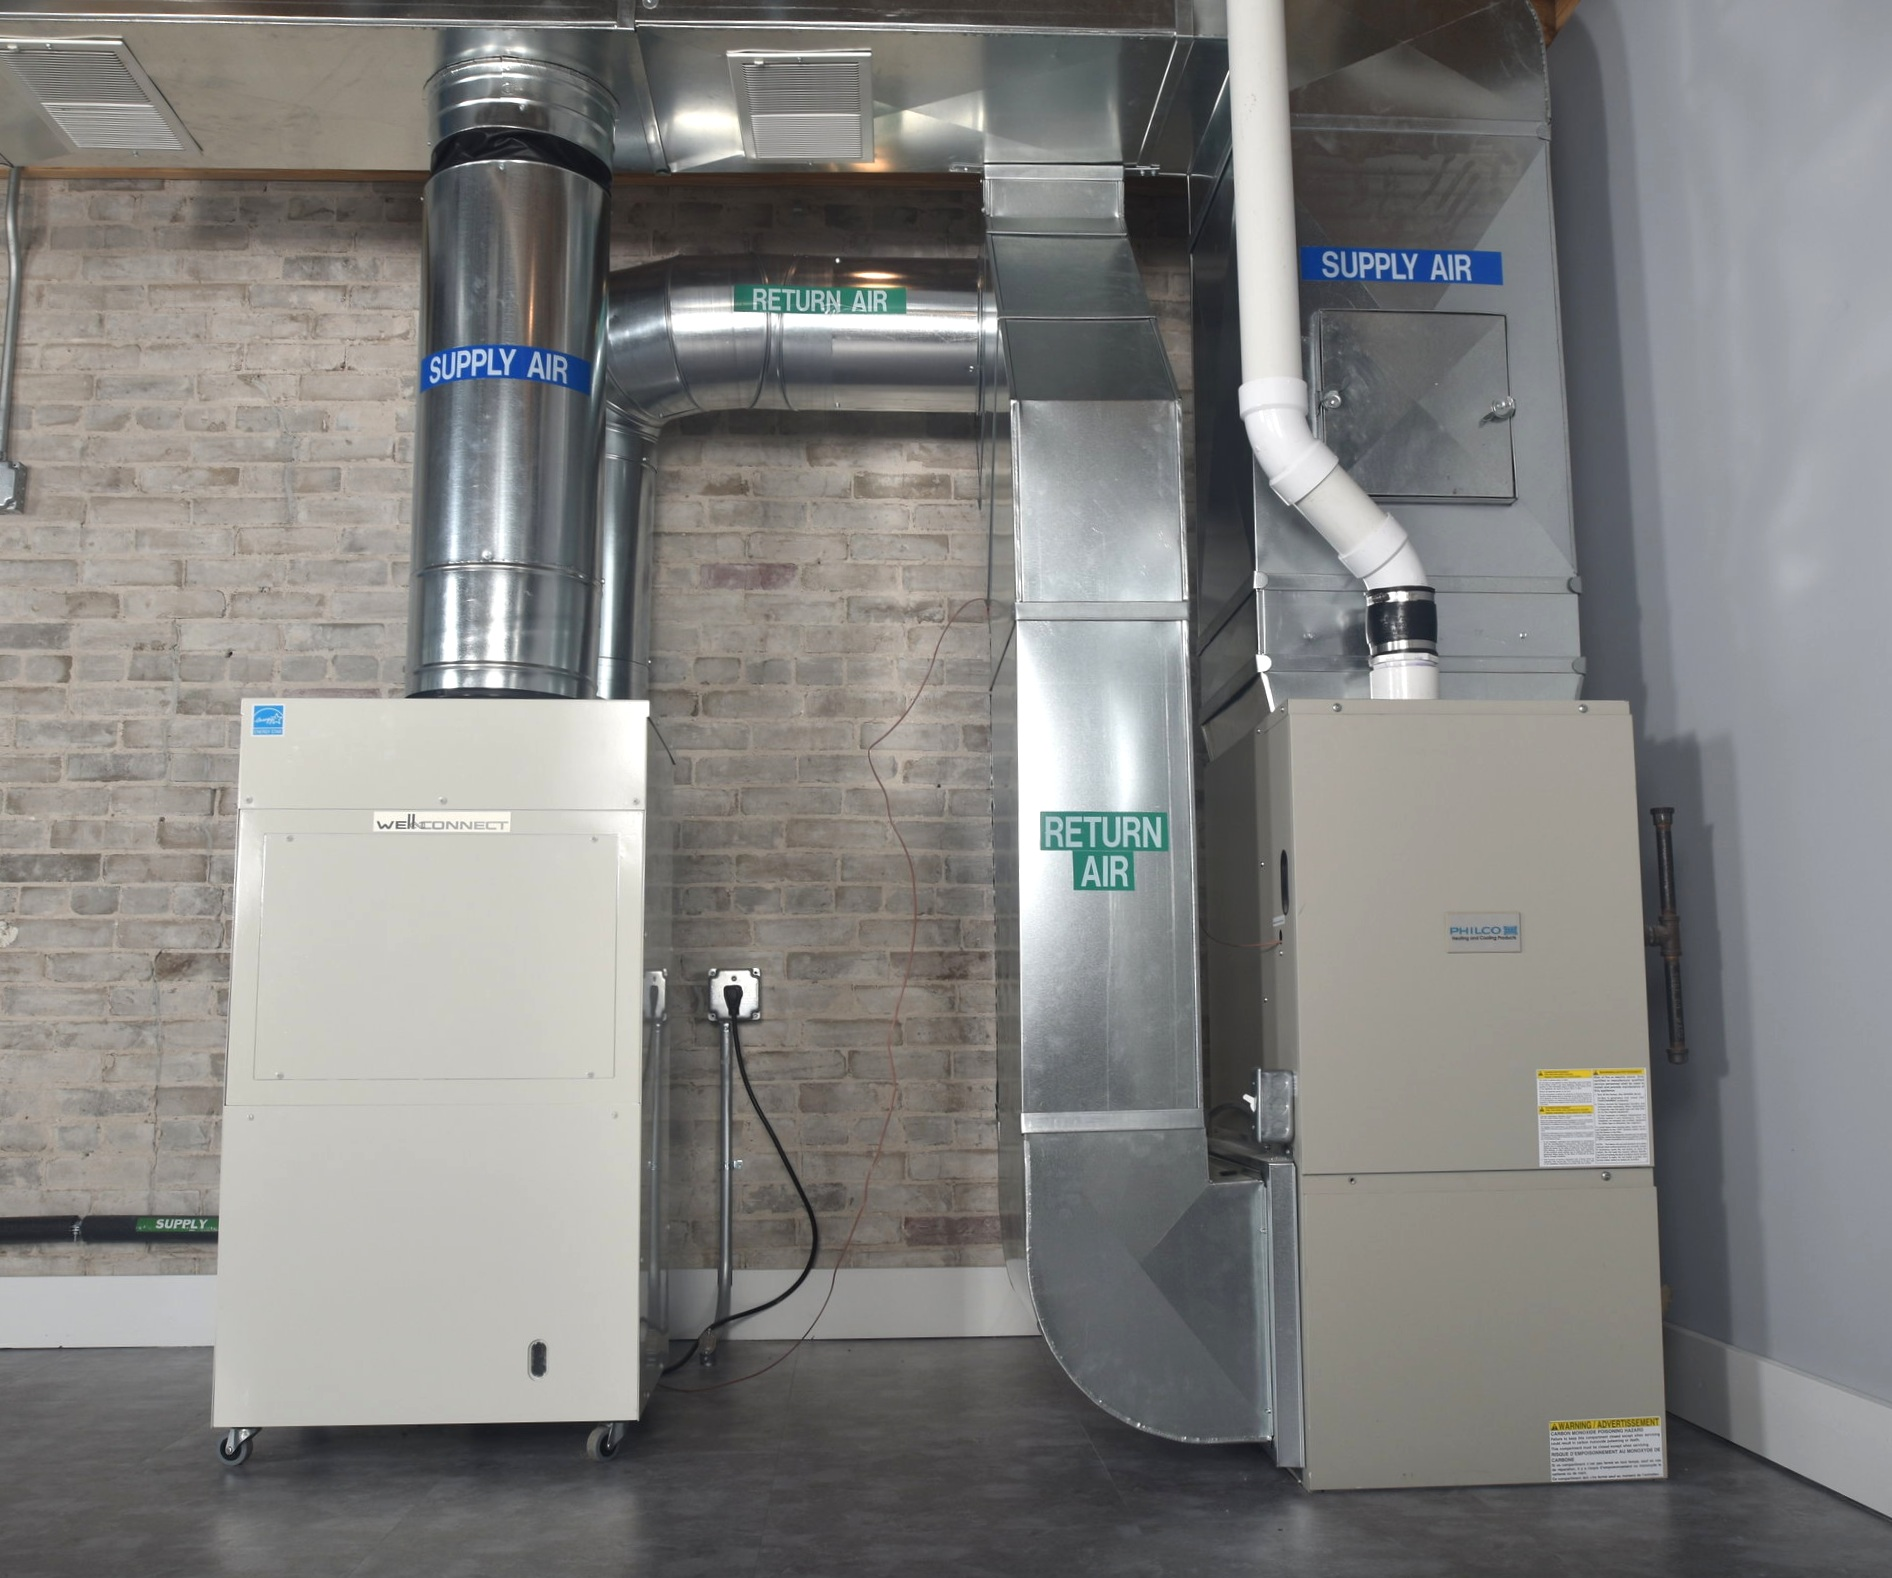 Well-Connect Hybrid Geothermal - Save money by going green!